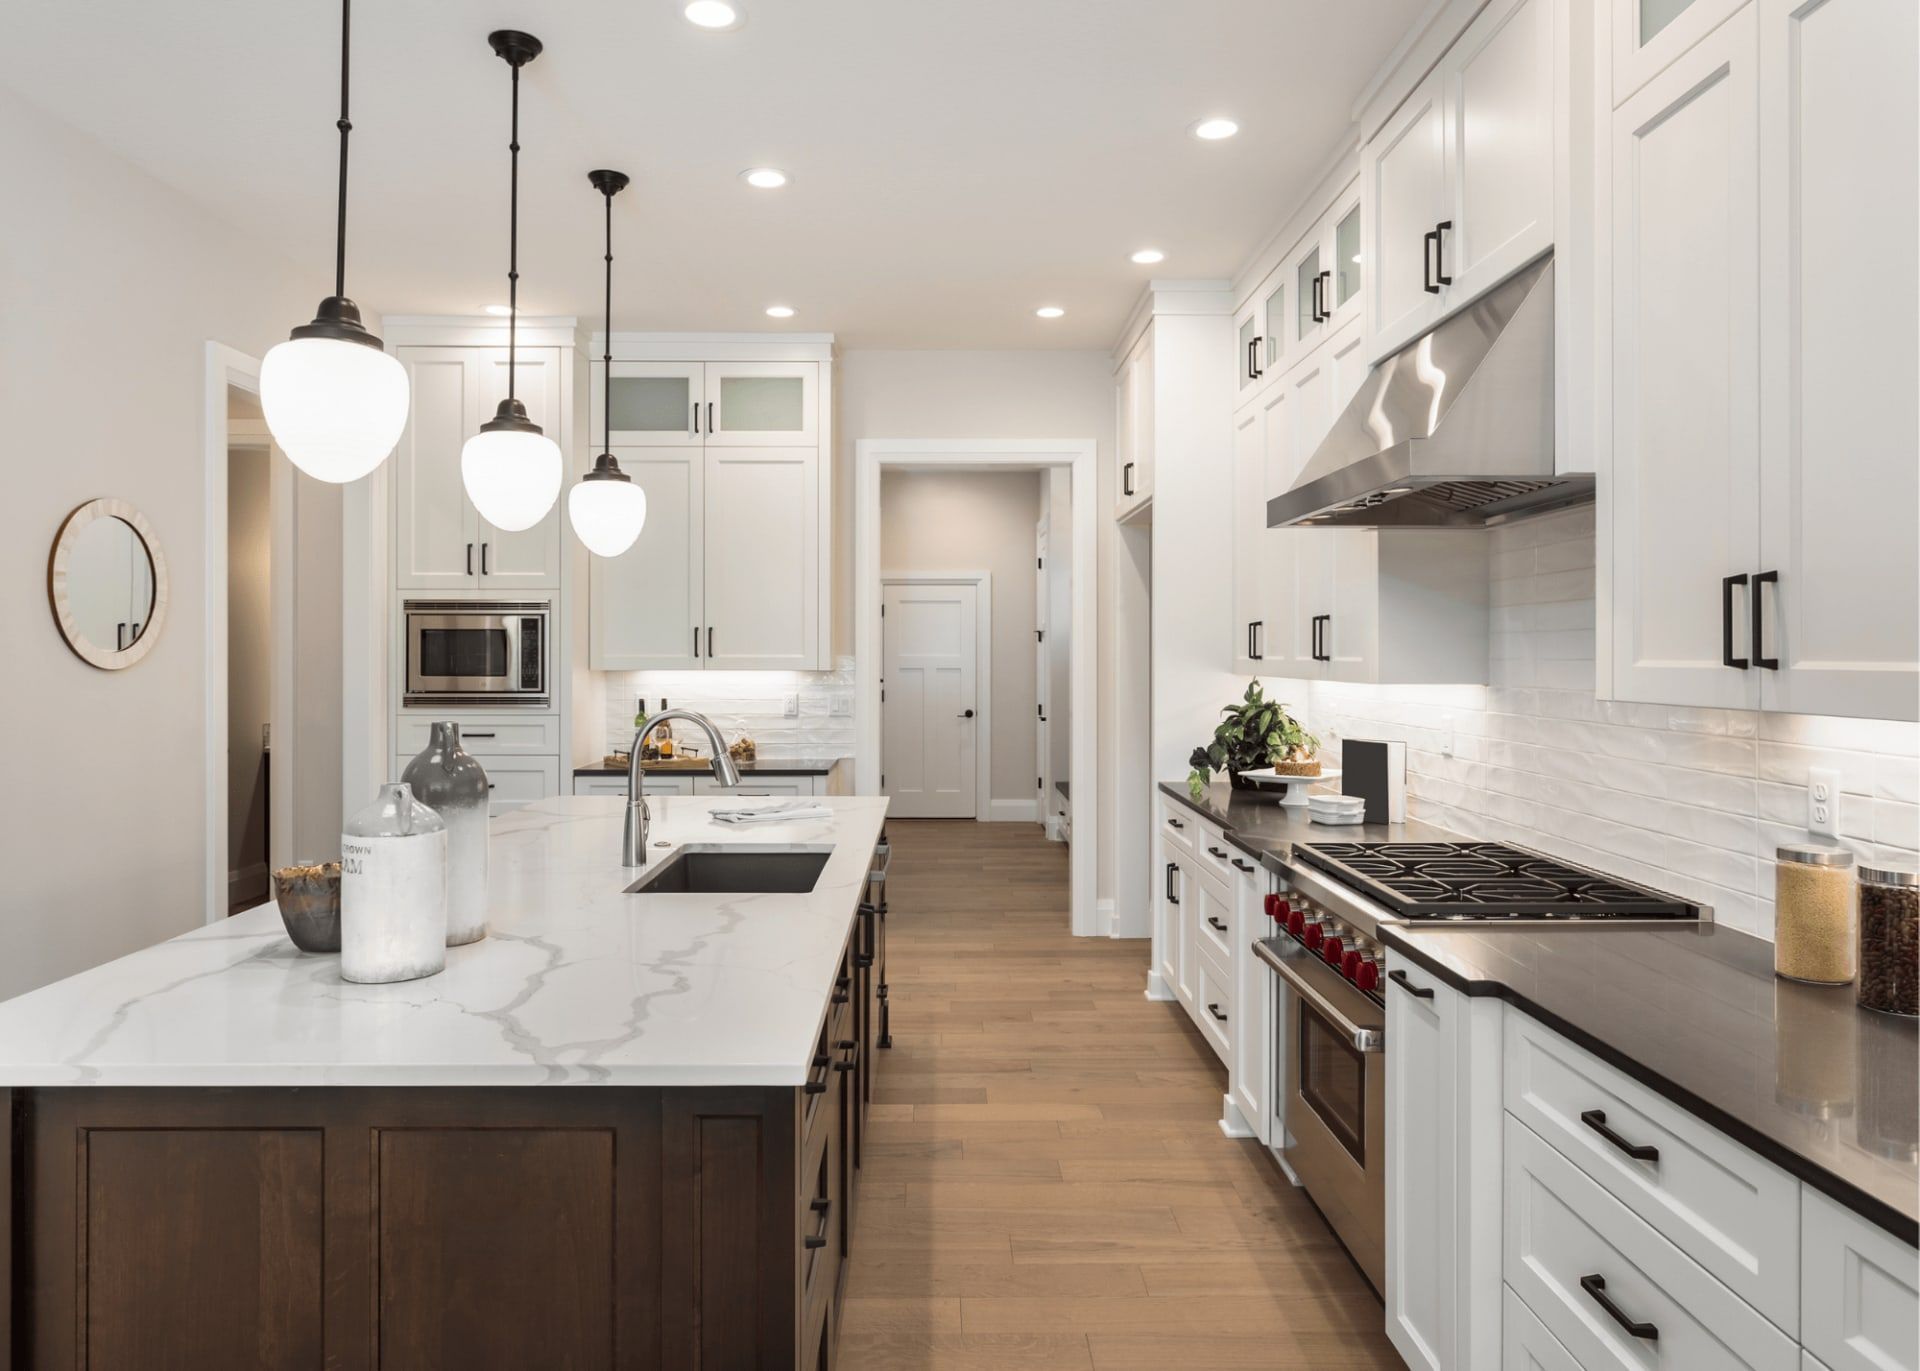 6 Home Upgrades with the Biggest ROI